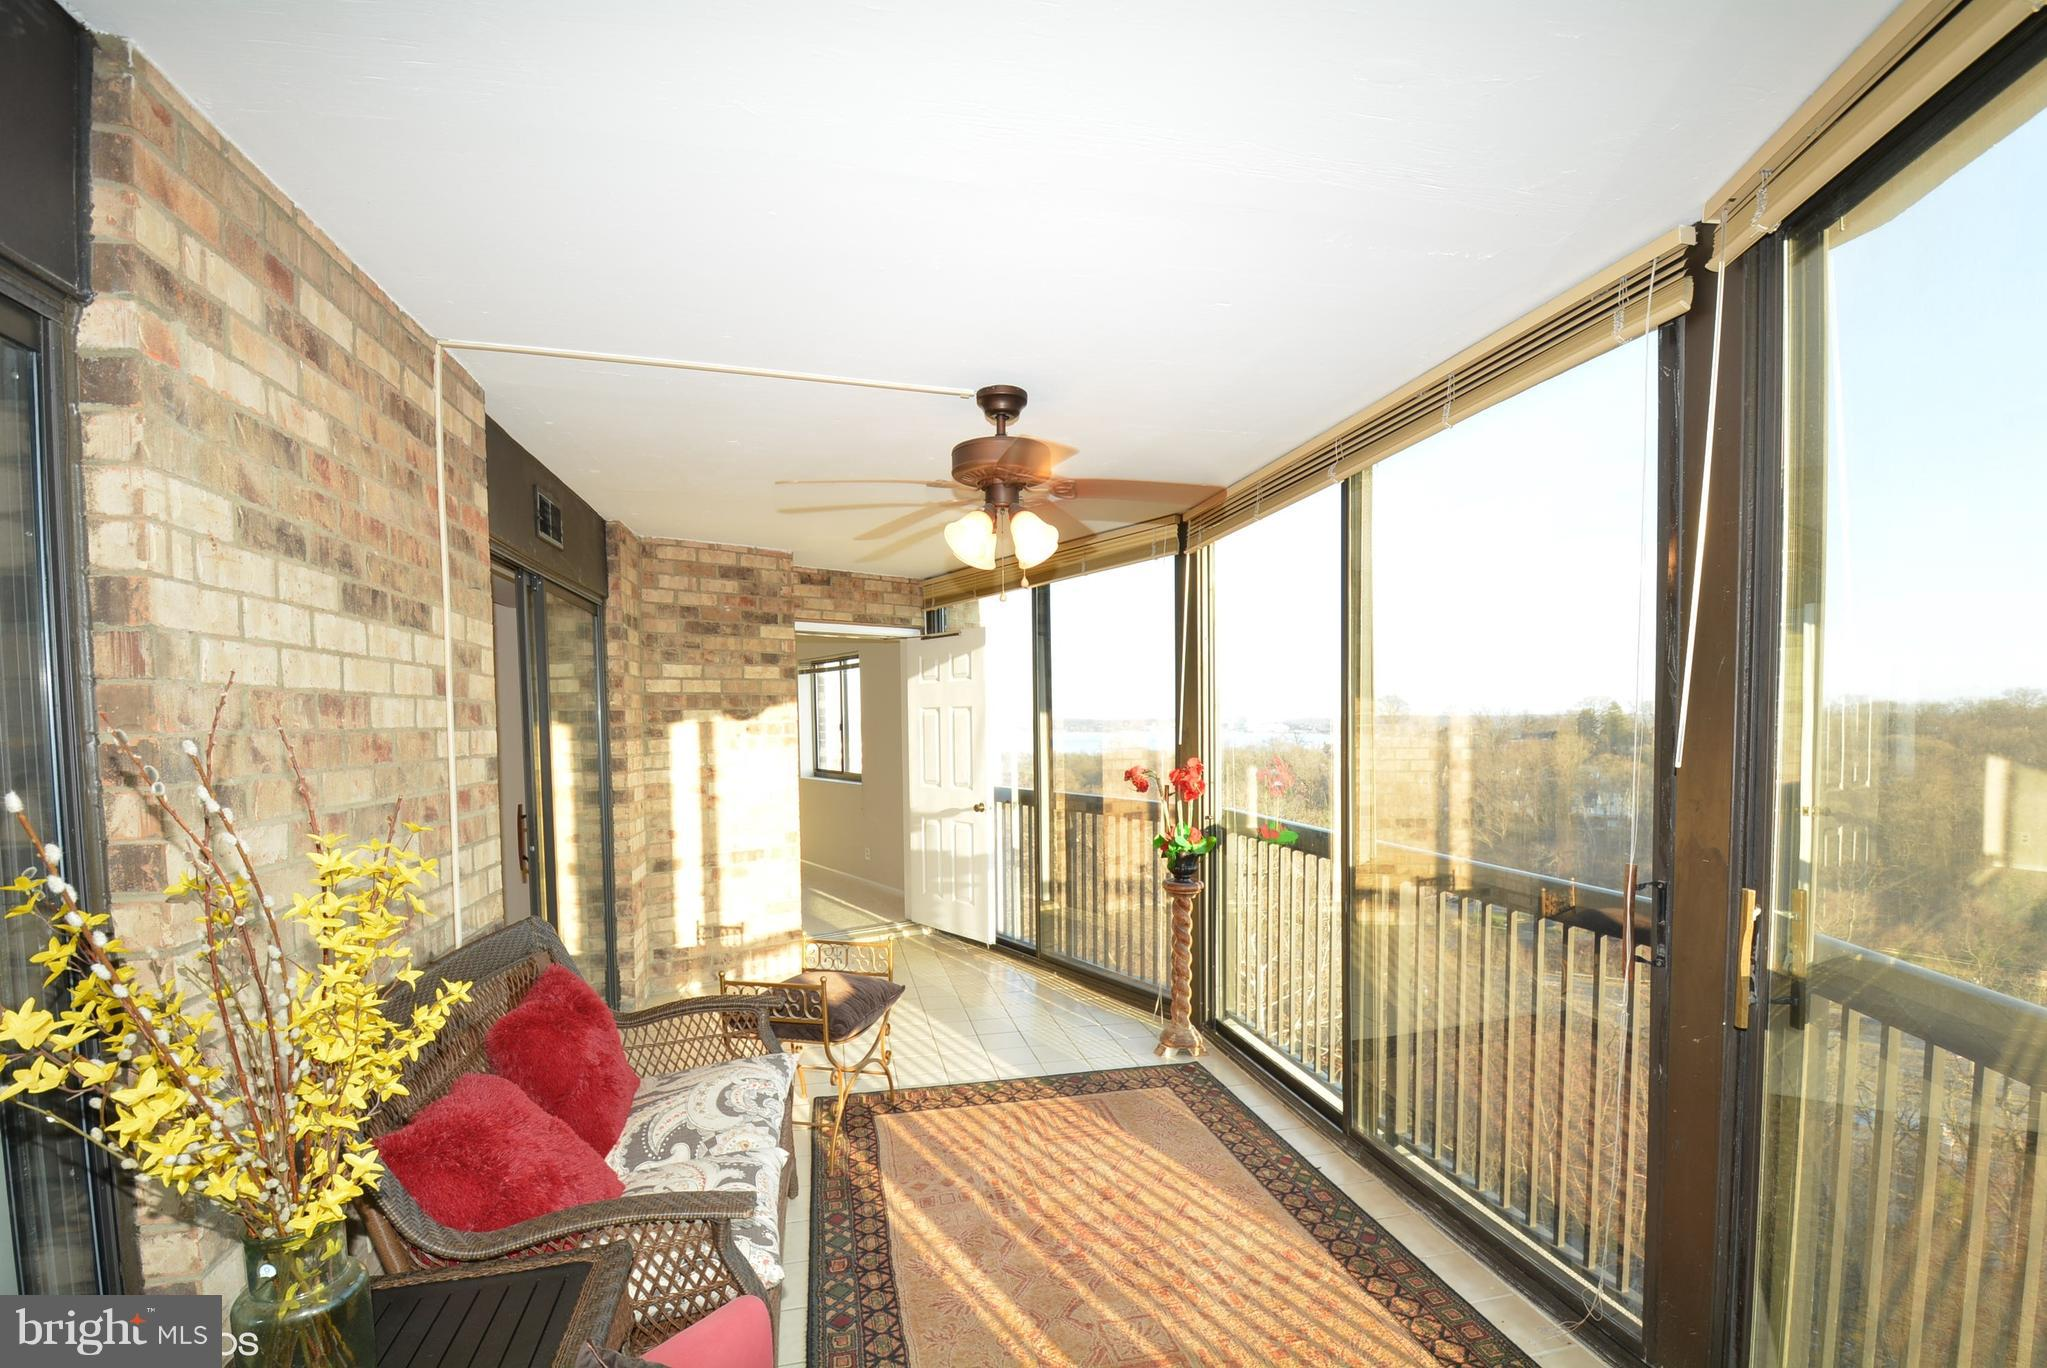 Single family feel, with condo perks! You will love the tree house feel from the huge enclosed balcony with views of the river, National Harbor and trees. Spacious 1525SF inside with 2 bedrooms (both with access to balcony) plus a den off the living room. Unit comes with garage space and storage space as well. Just steps from the community center, which offers loads of amenities; you will enjoy the resort feel here! Small town ambience with variety of social activities & events. 24/7 monitored security; 36+ wooded acres; very pet-friendly; full-service restaurant, indoor pool and outdoor pool, tennis, bowling, party rooms, hair salon, free shuttle to Metro and shops. Located 2 lights from Old Town, and 20 minutes from Crystal City (by Metro yellow line or driving, it's the same!) so great for Amazon!